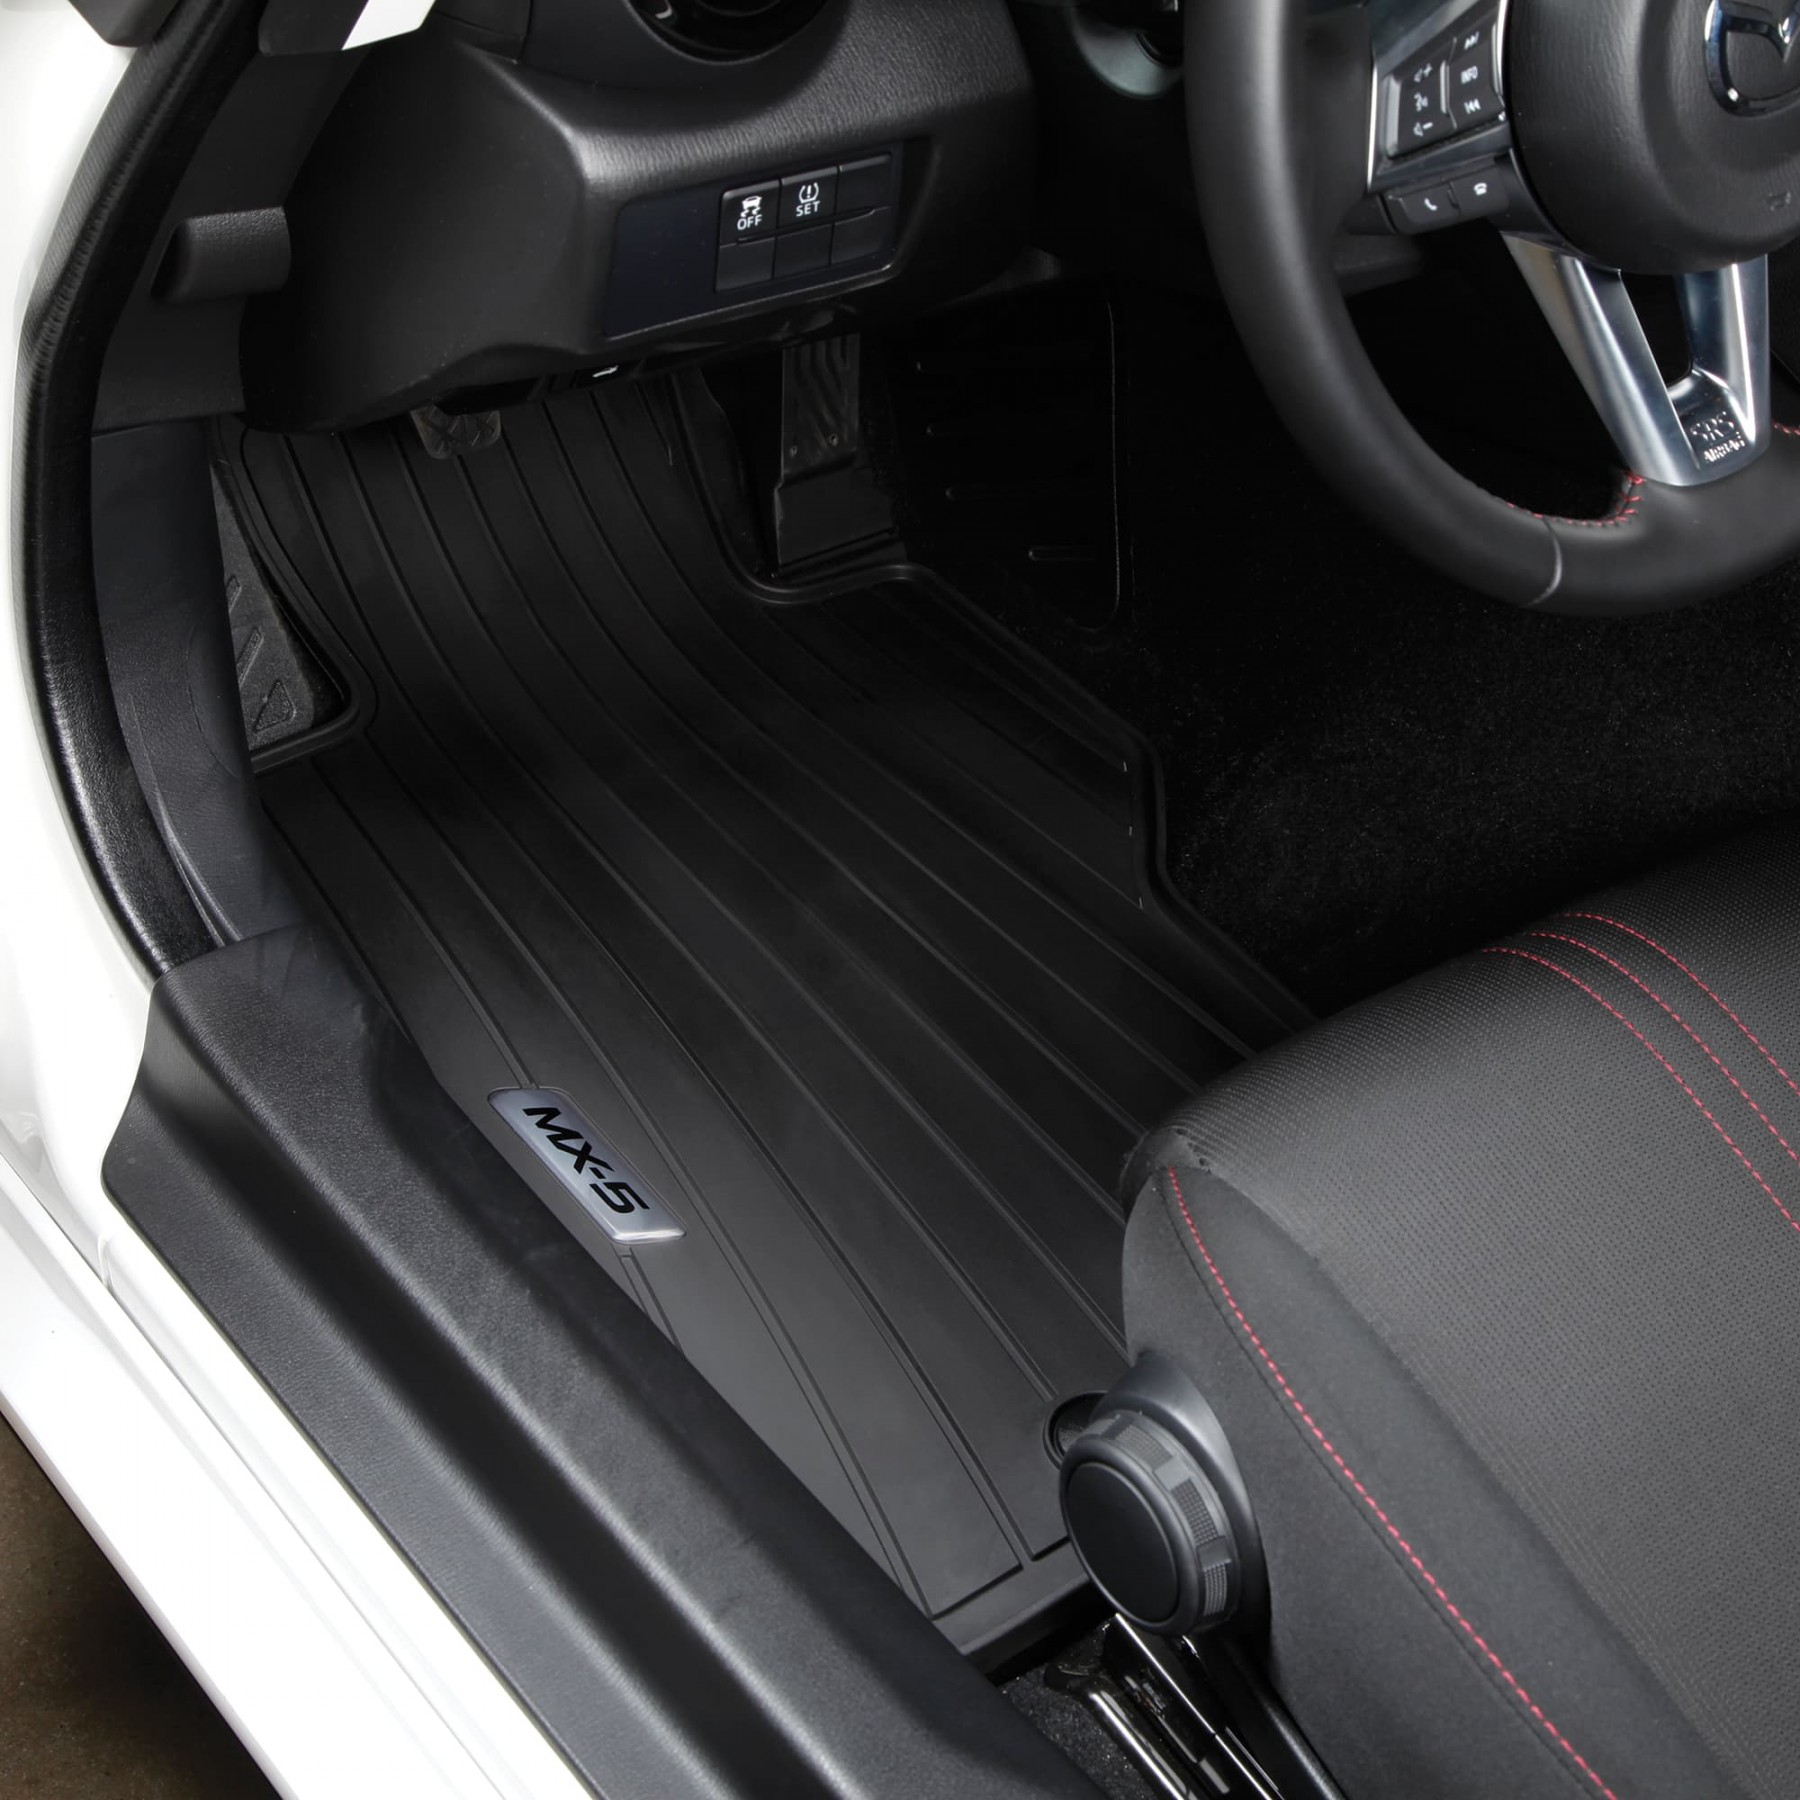 For 2006-2015 Mazda Miata MX-5 NC All Weather Black Rubber Floor Mats Front